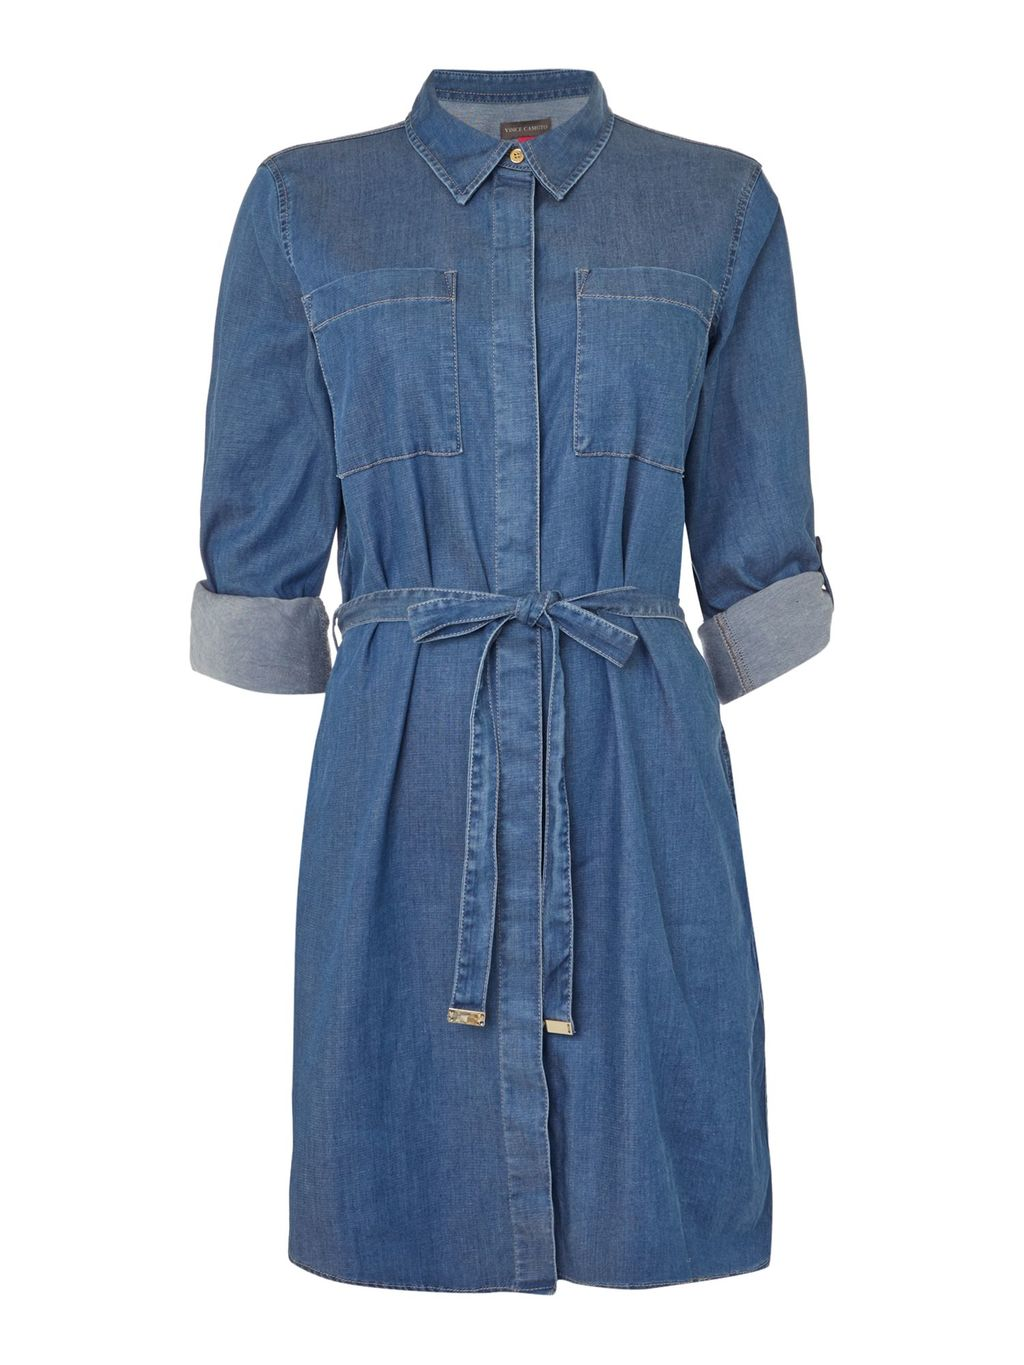 Belted Denim Dress, Denim - style: shirt; length: mid thigh; neckline: shirt collar/peter pan/zip with opening; pattern: plain; waist detail: belted waist/tie at waist/drawstring; predominant colour: navy; occasions: casual; fit: body skimming; fibres: cotton - stretch; sleeve length: 3/4 length; sleeve style: standard; texture group: denim; pattern type: fabric; season: s/s 2016; wardrobe: basic